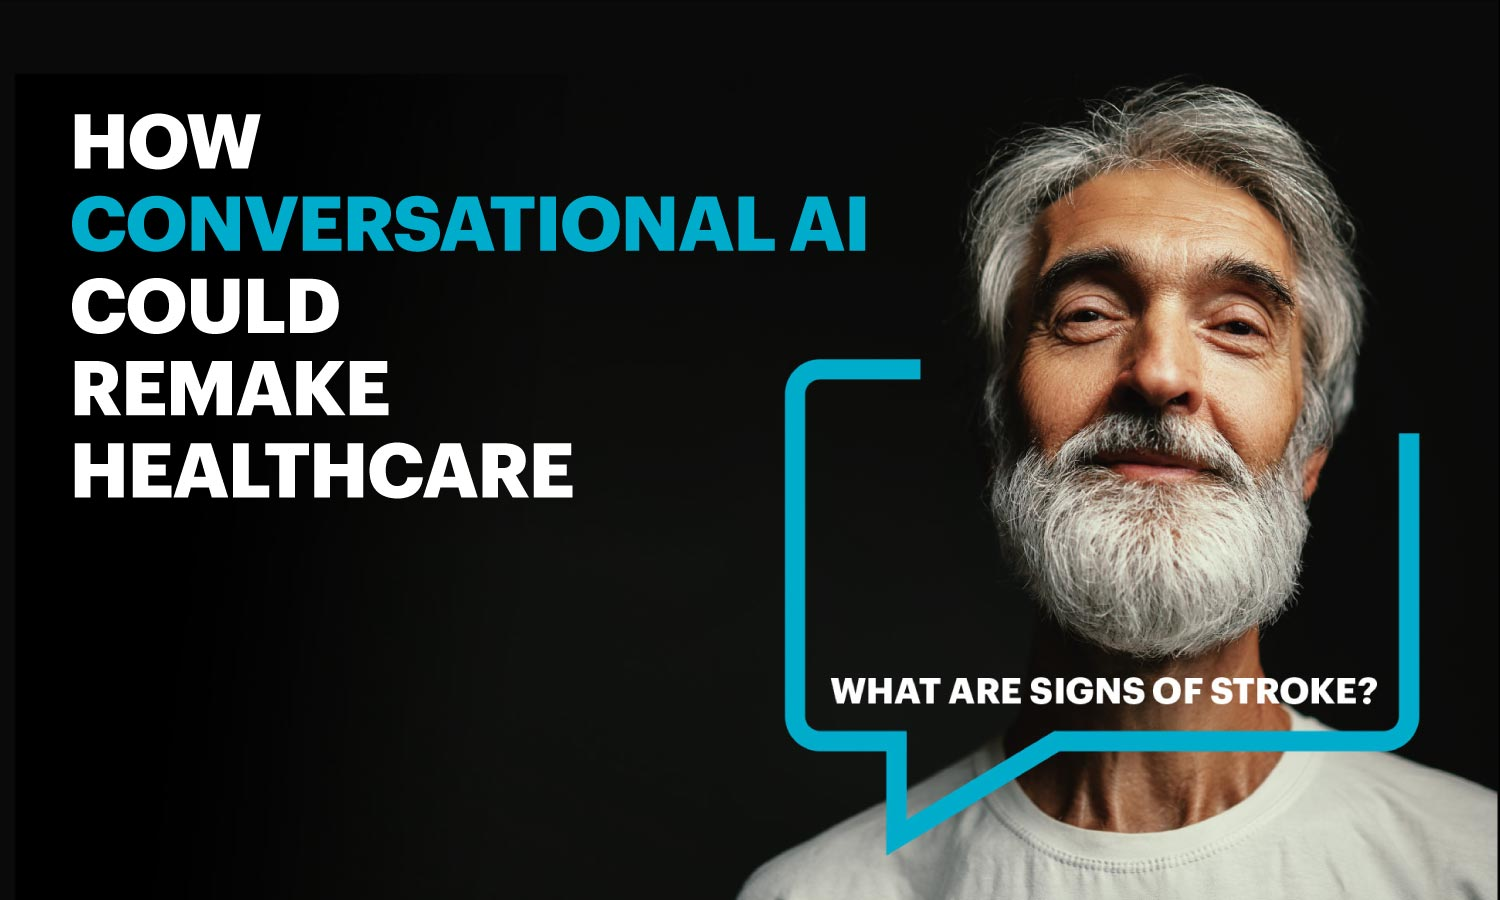 Conversational AI technology with EPIC integration